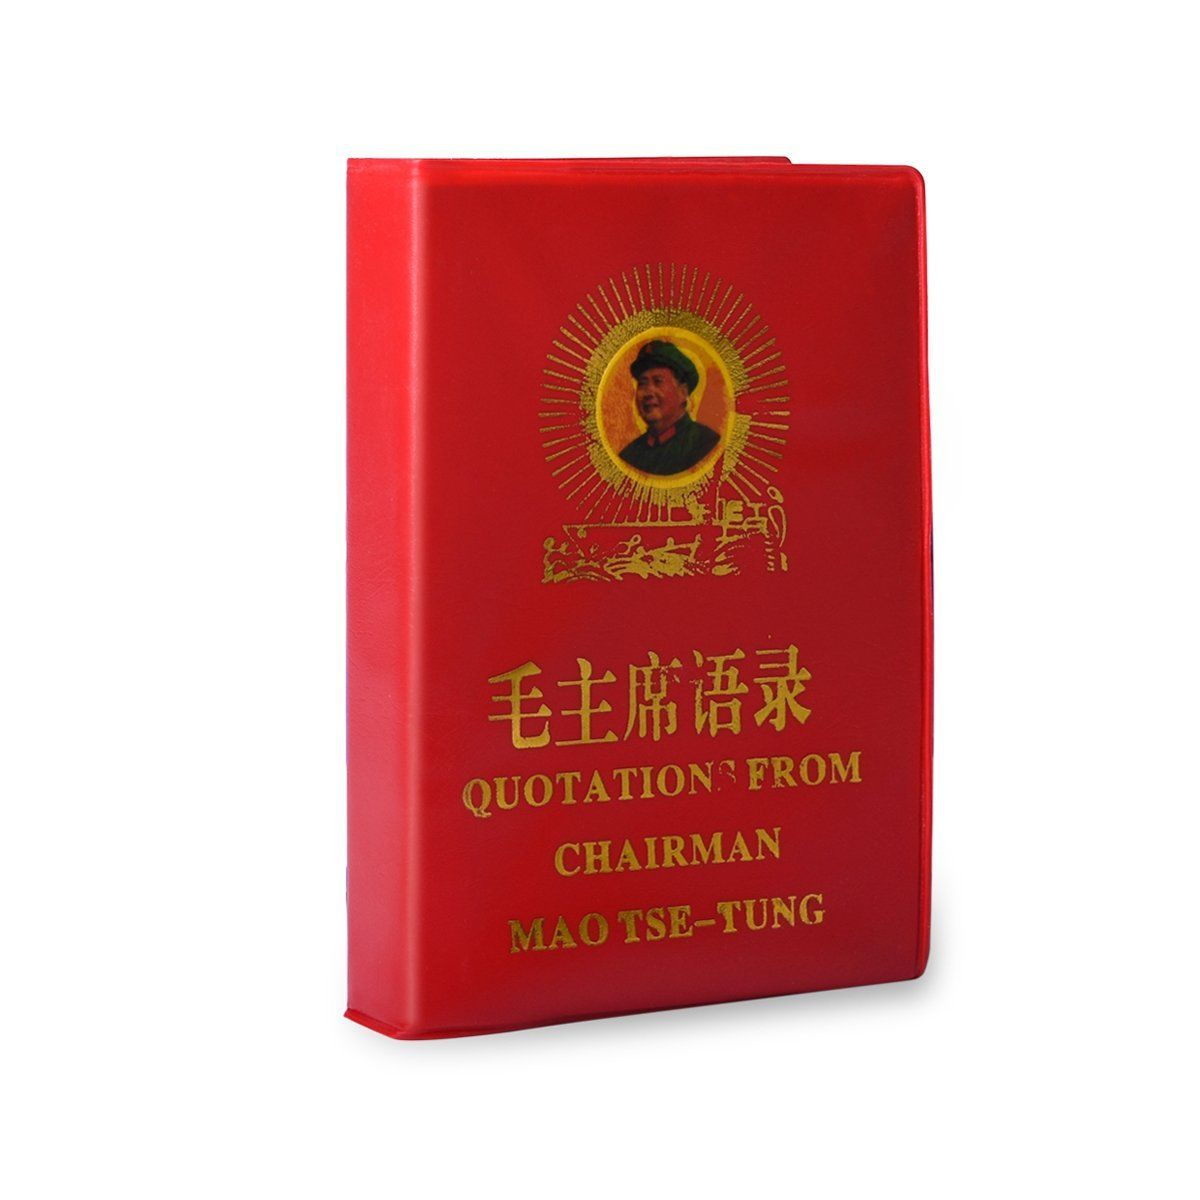 Quotations From Chariman Mao Tse-Tung, Mao Zedong Chairman Mao's Little Red Book Chinese Vintage Book